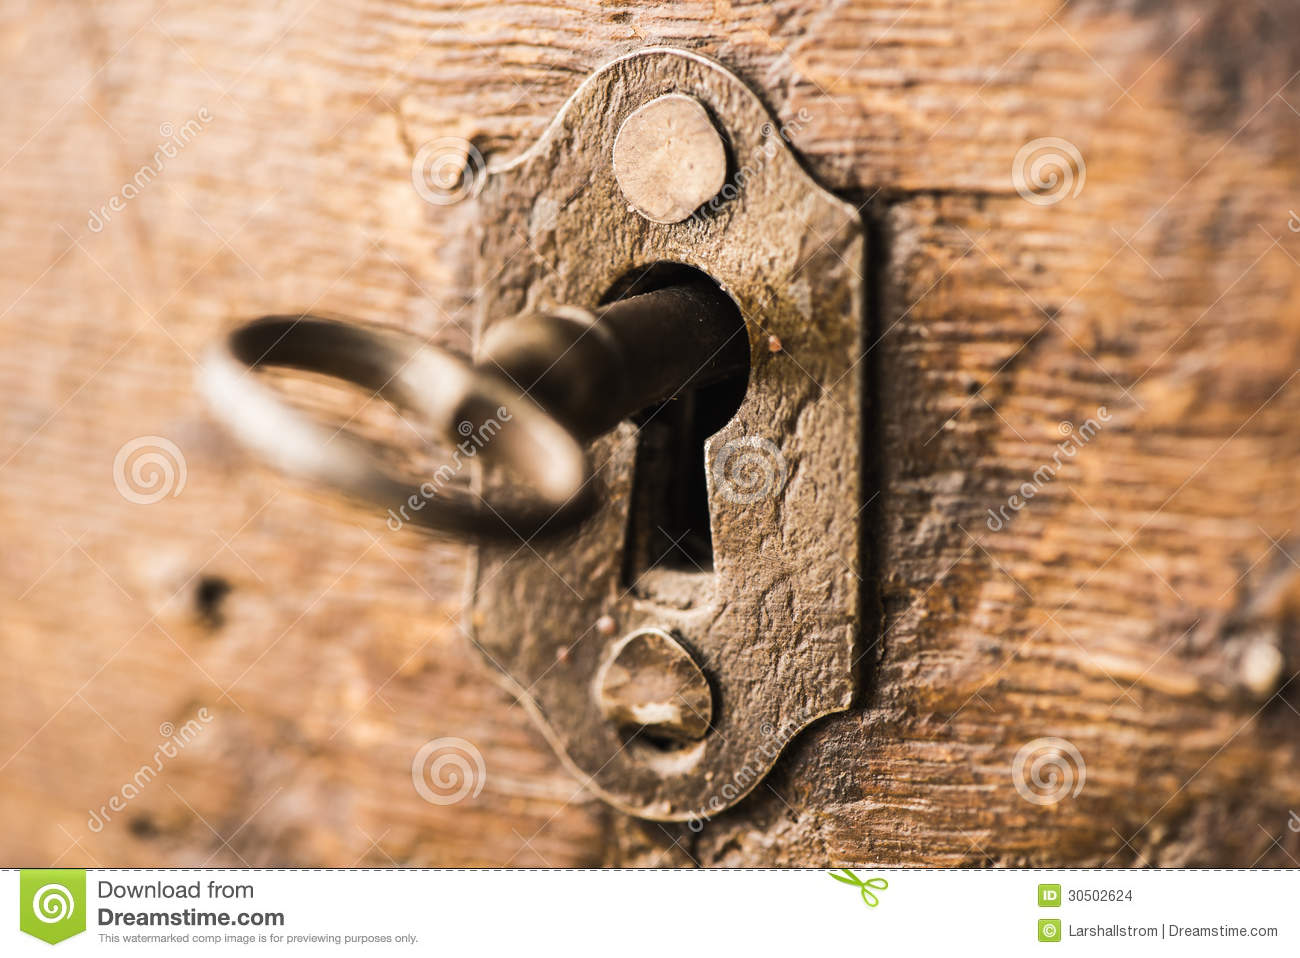 Vintage Key In Lock Of Wooden Chest Stock Images - Image: 30502624